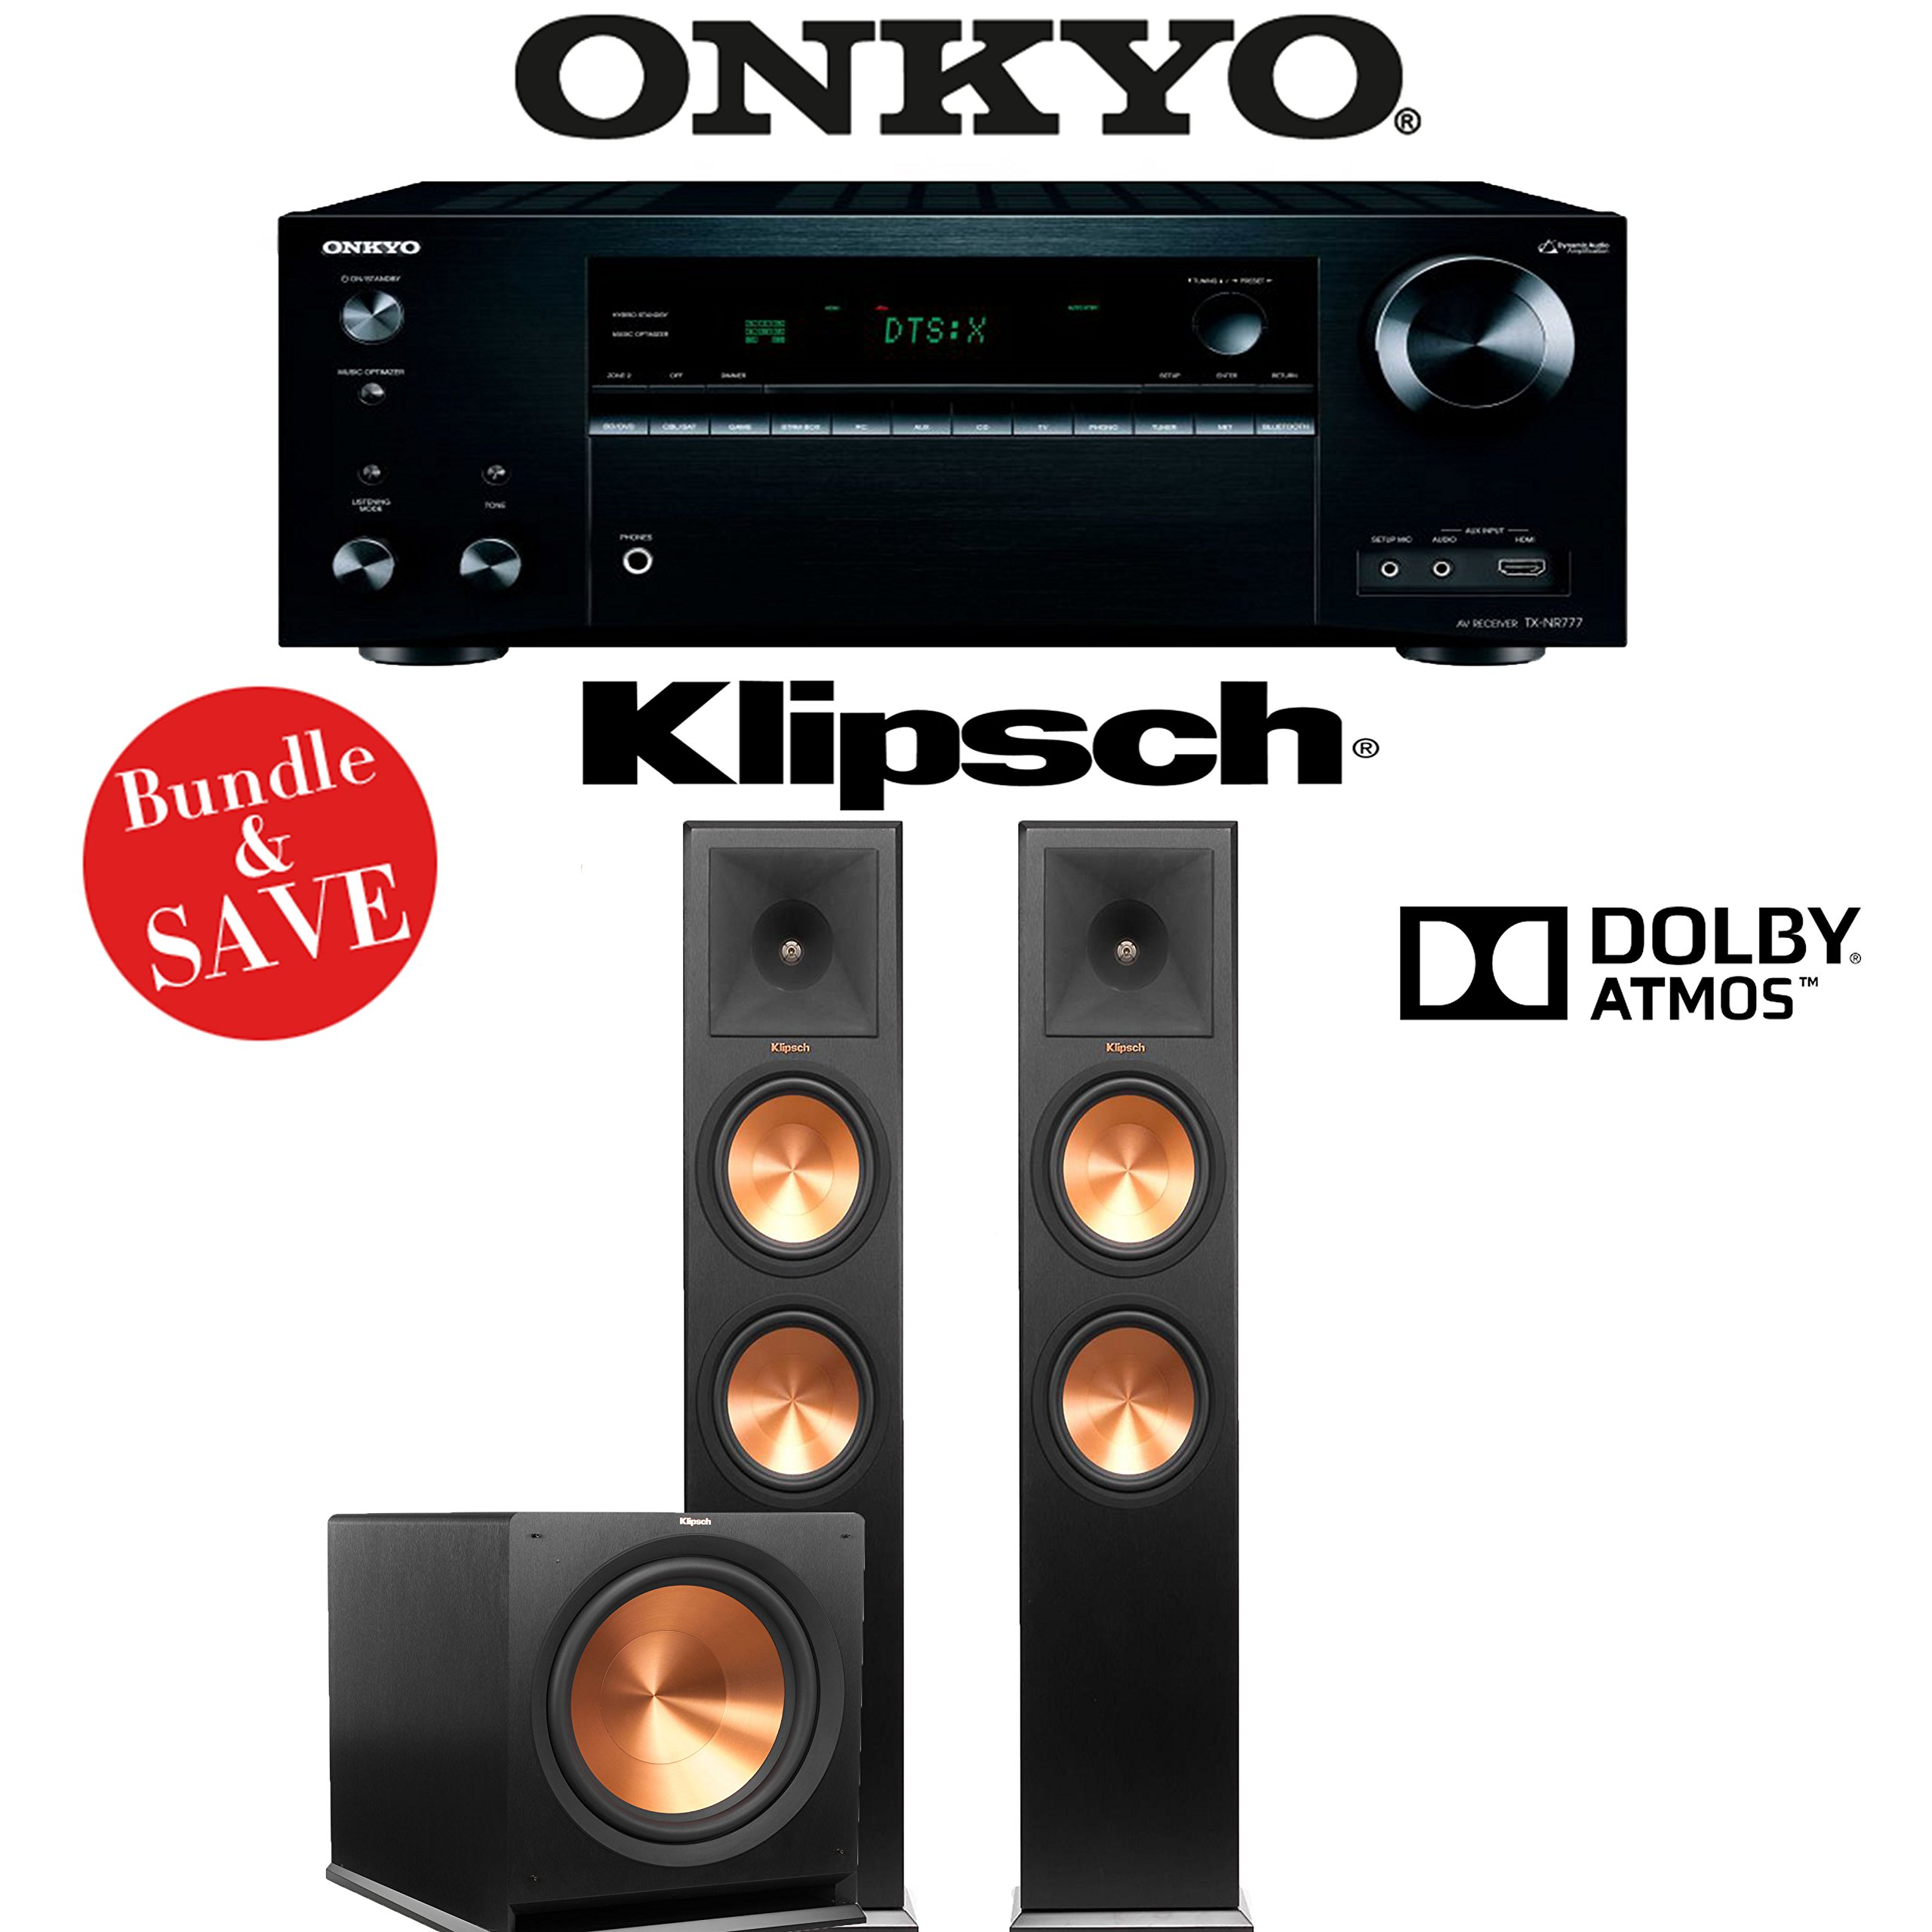 Onkyo TX-NR777 7.2-Channel 4K THX Certified Network A/V Receiver + Klipsch RP-280FA + Klipsch R-115SW - 2.1-Ch Home Theater Package